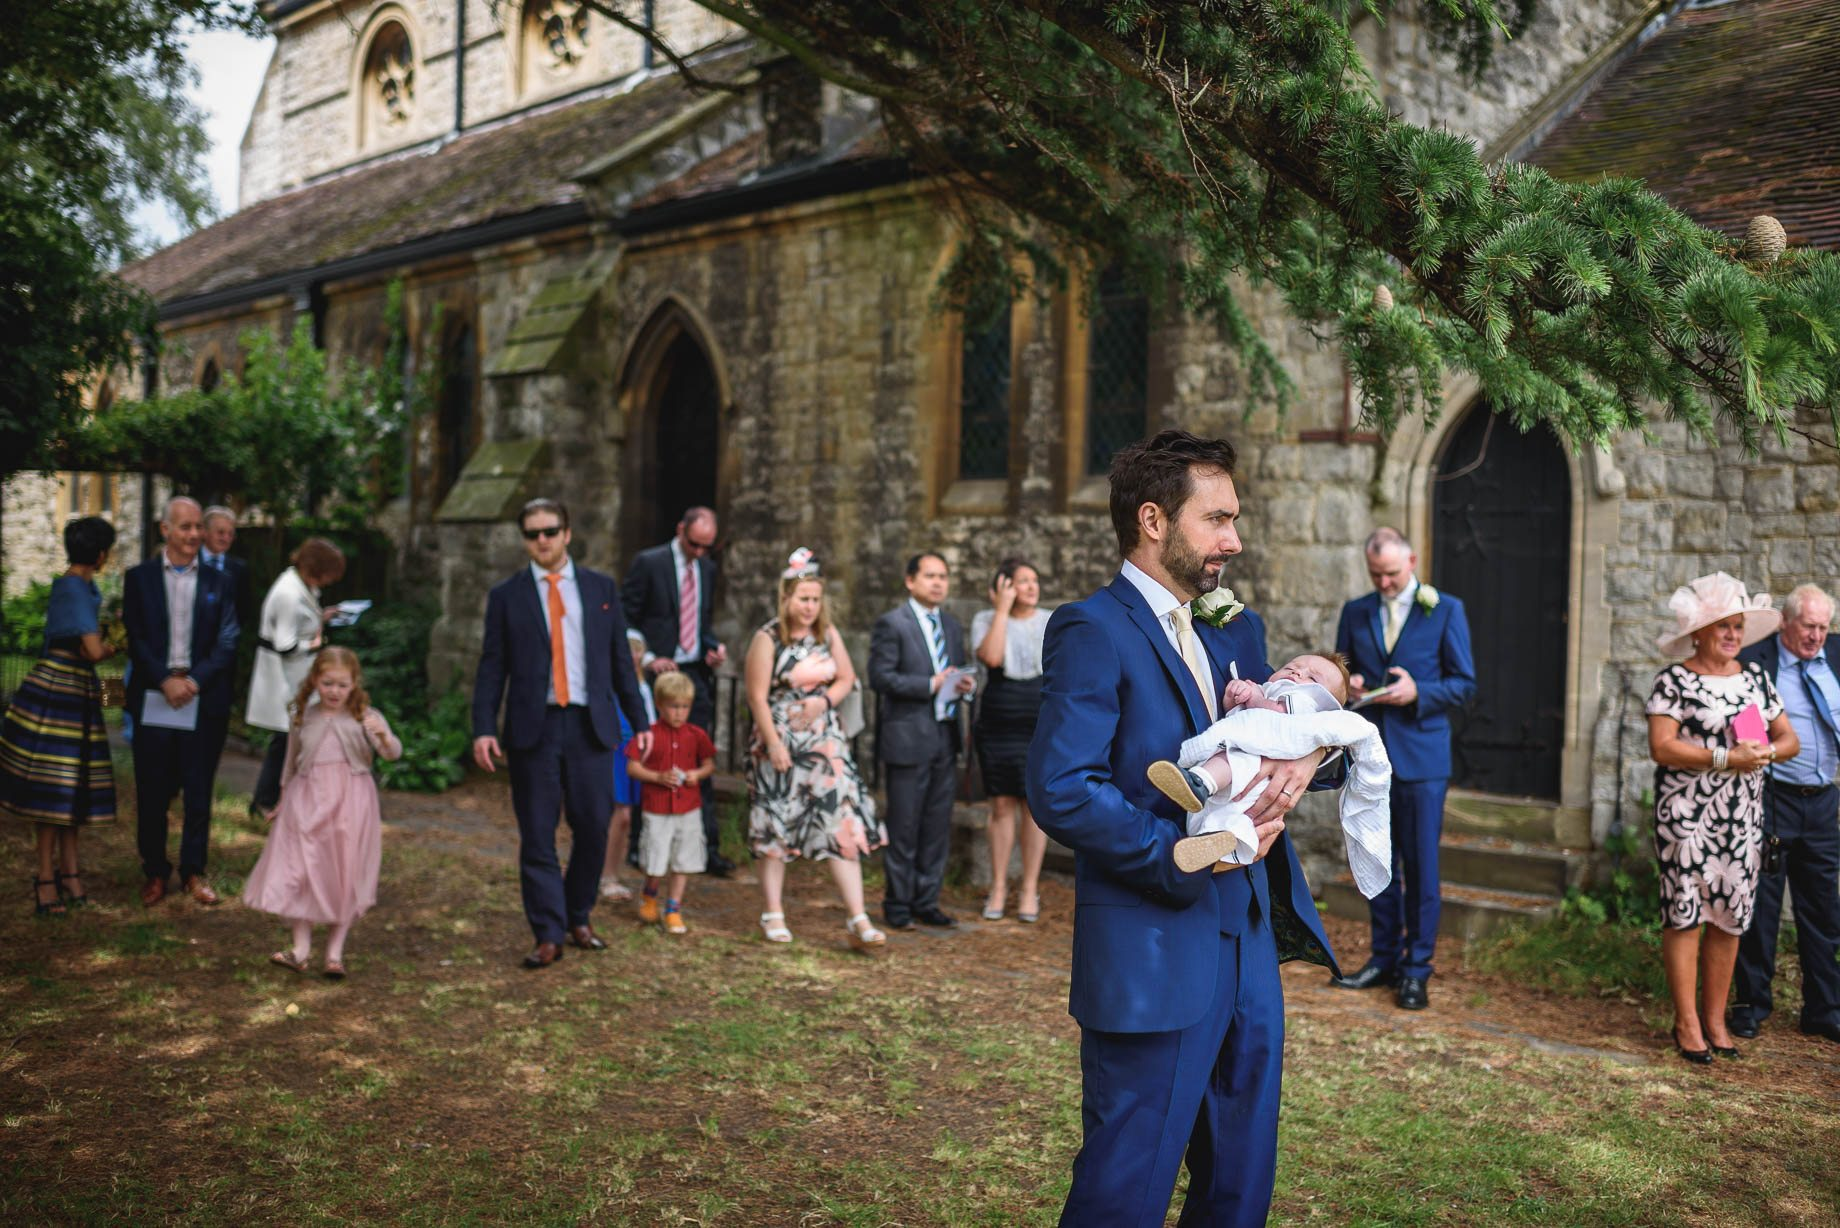 Hertfordshire wedding photography - Sarah and Stephen by Guy Collier Photography (74 of 161)